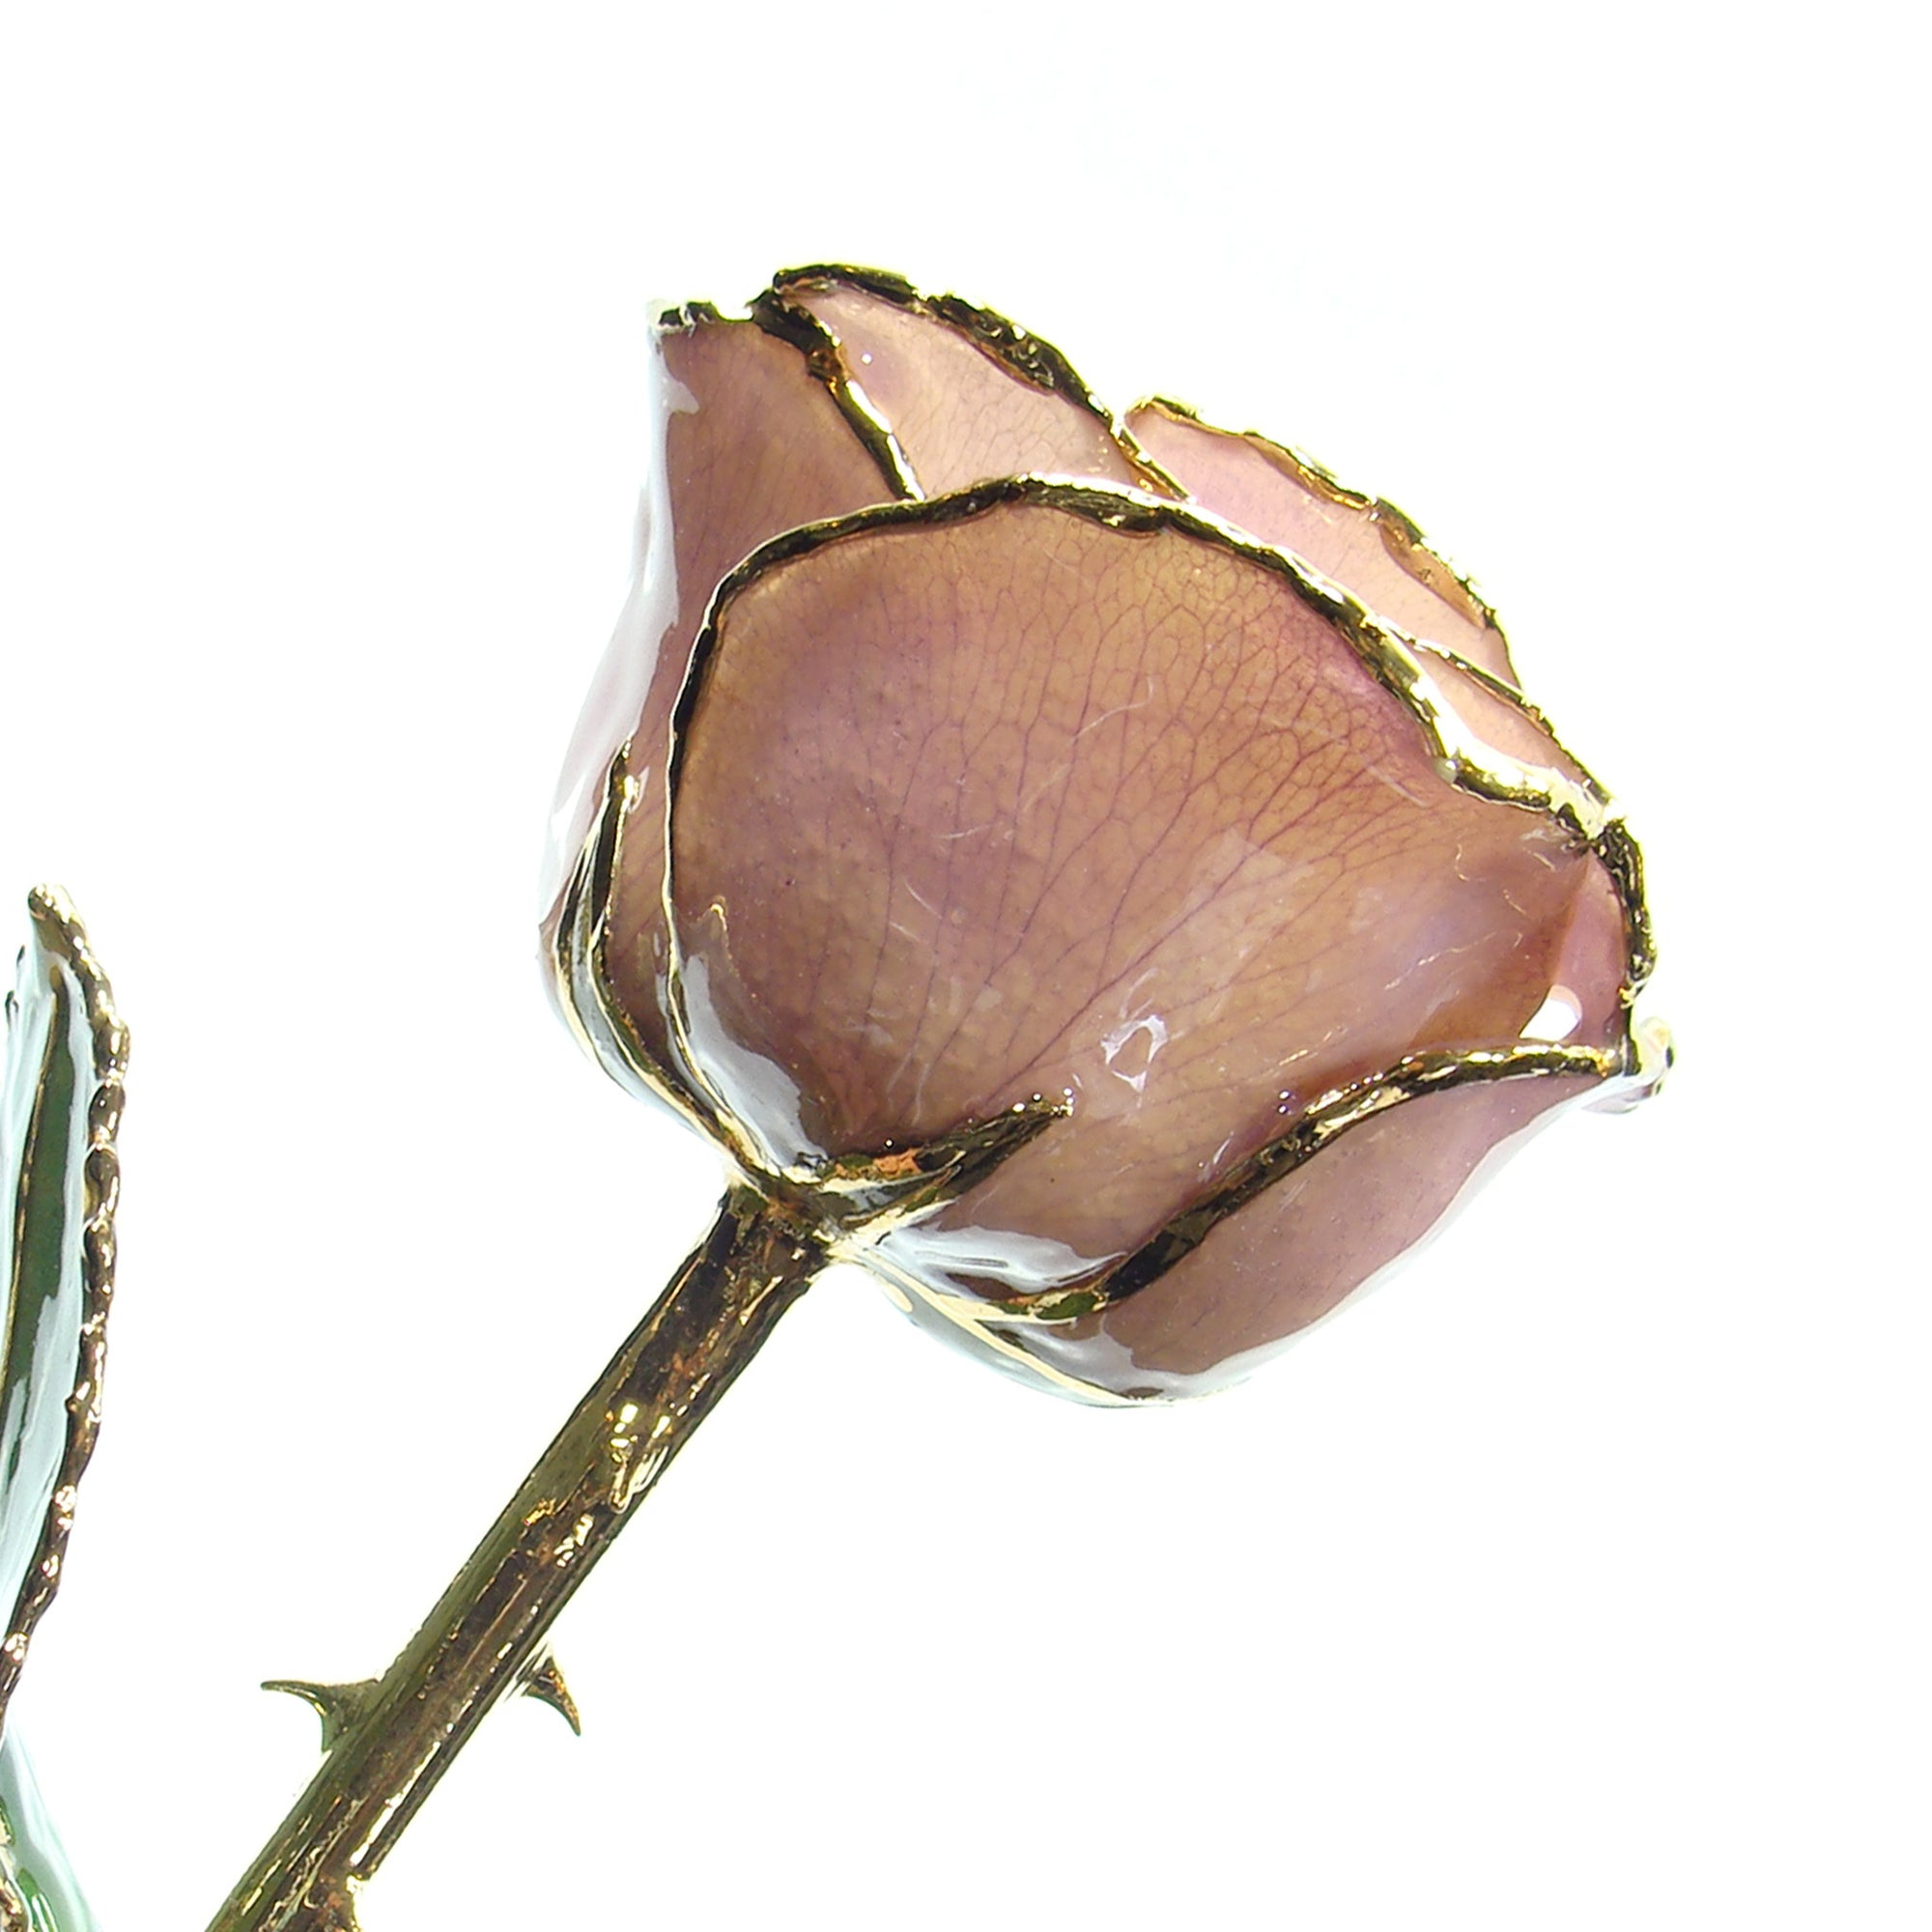 24K Gold Trimmed Forever Rose with Lavender Petals which are a light pink or purple color. View of Stem, Leaves, and Rose Petals and Showing Detail of Gold Trim